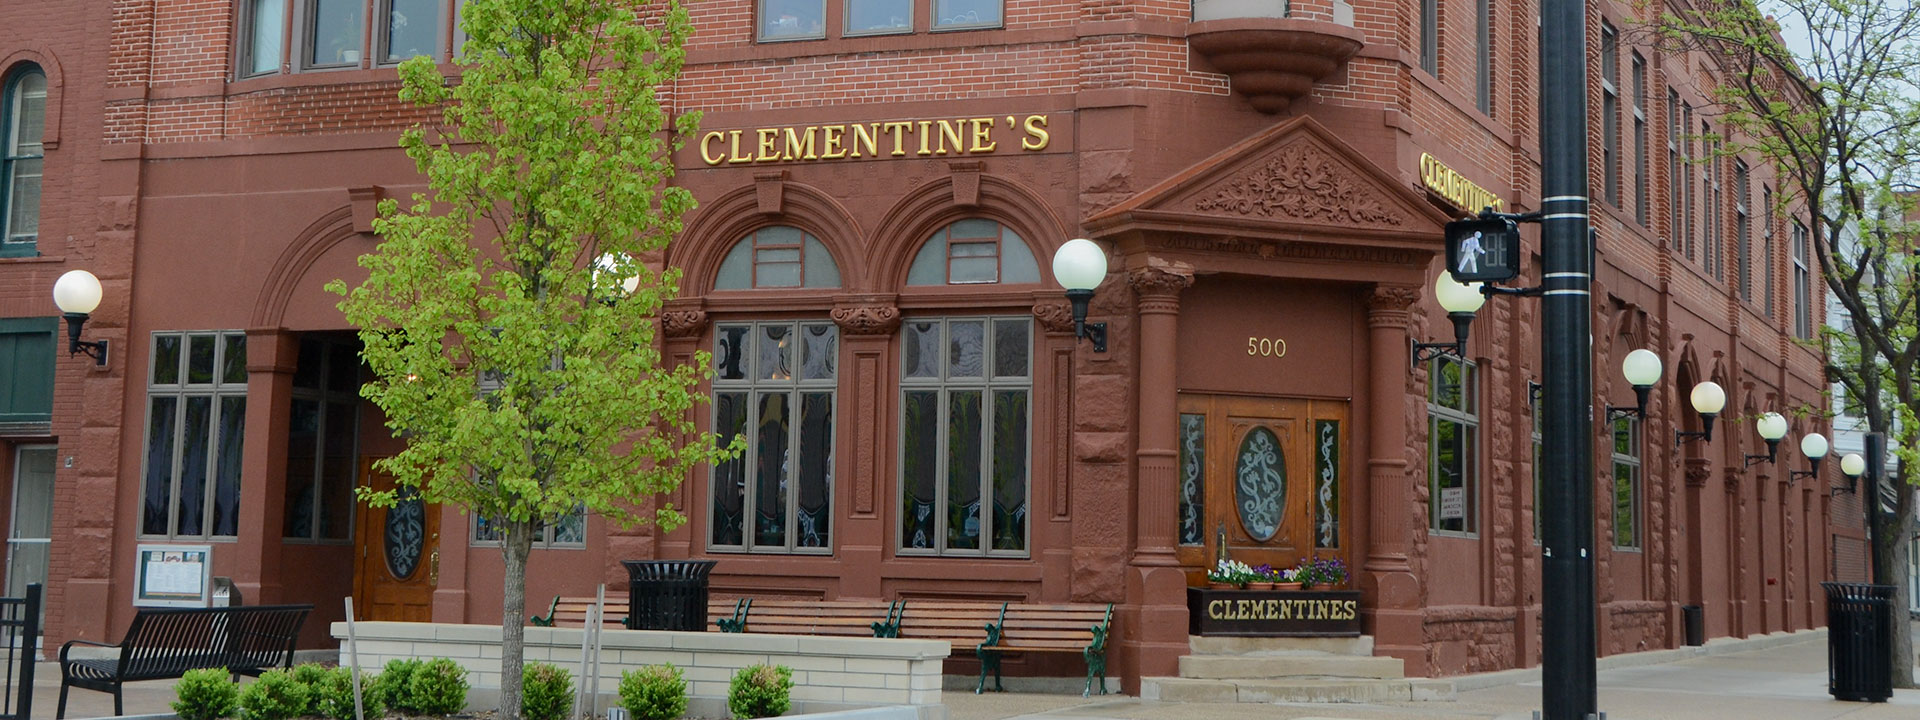 Home - Clementine's of South Haven and St Joseph, Mi